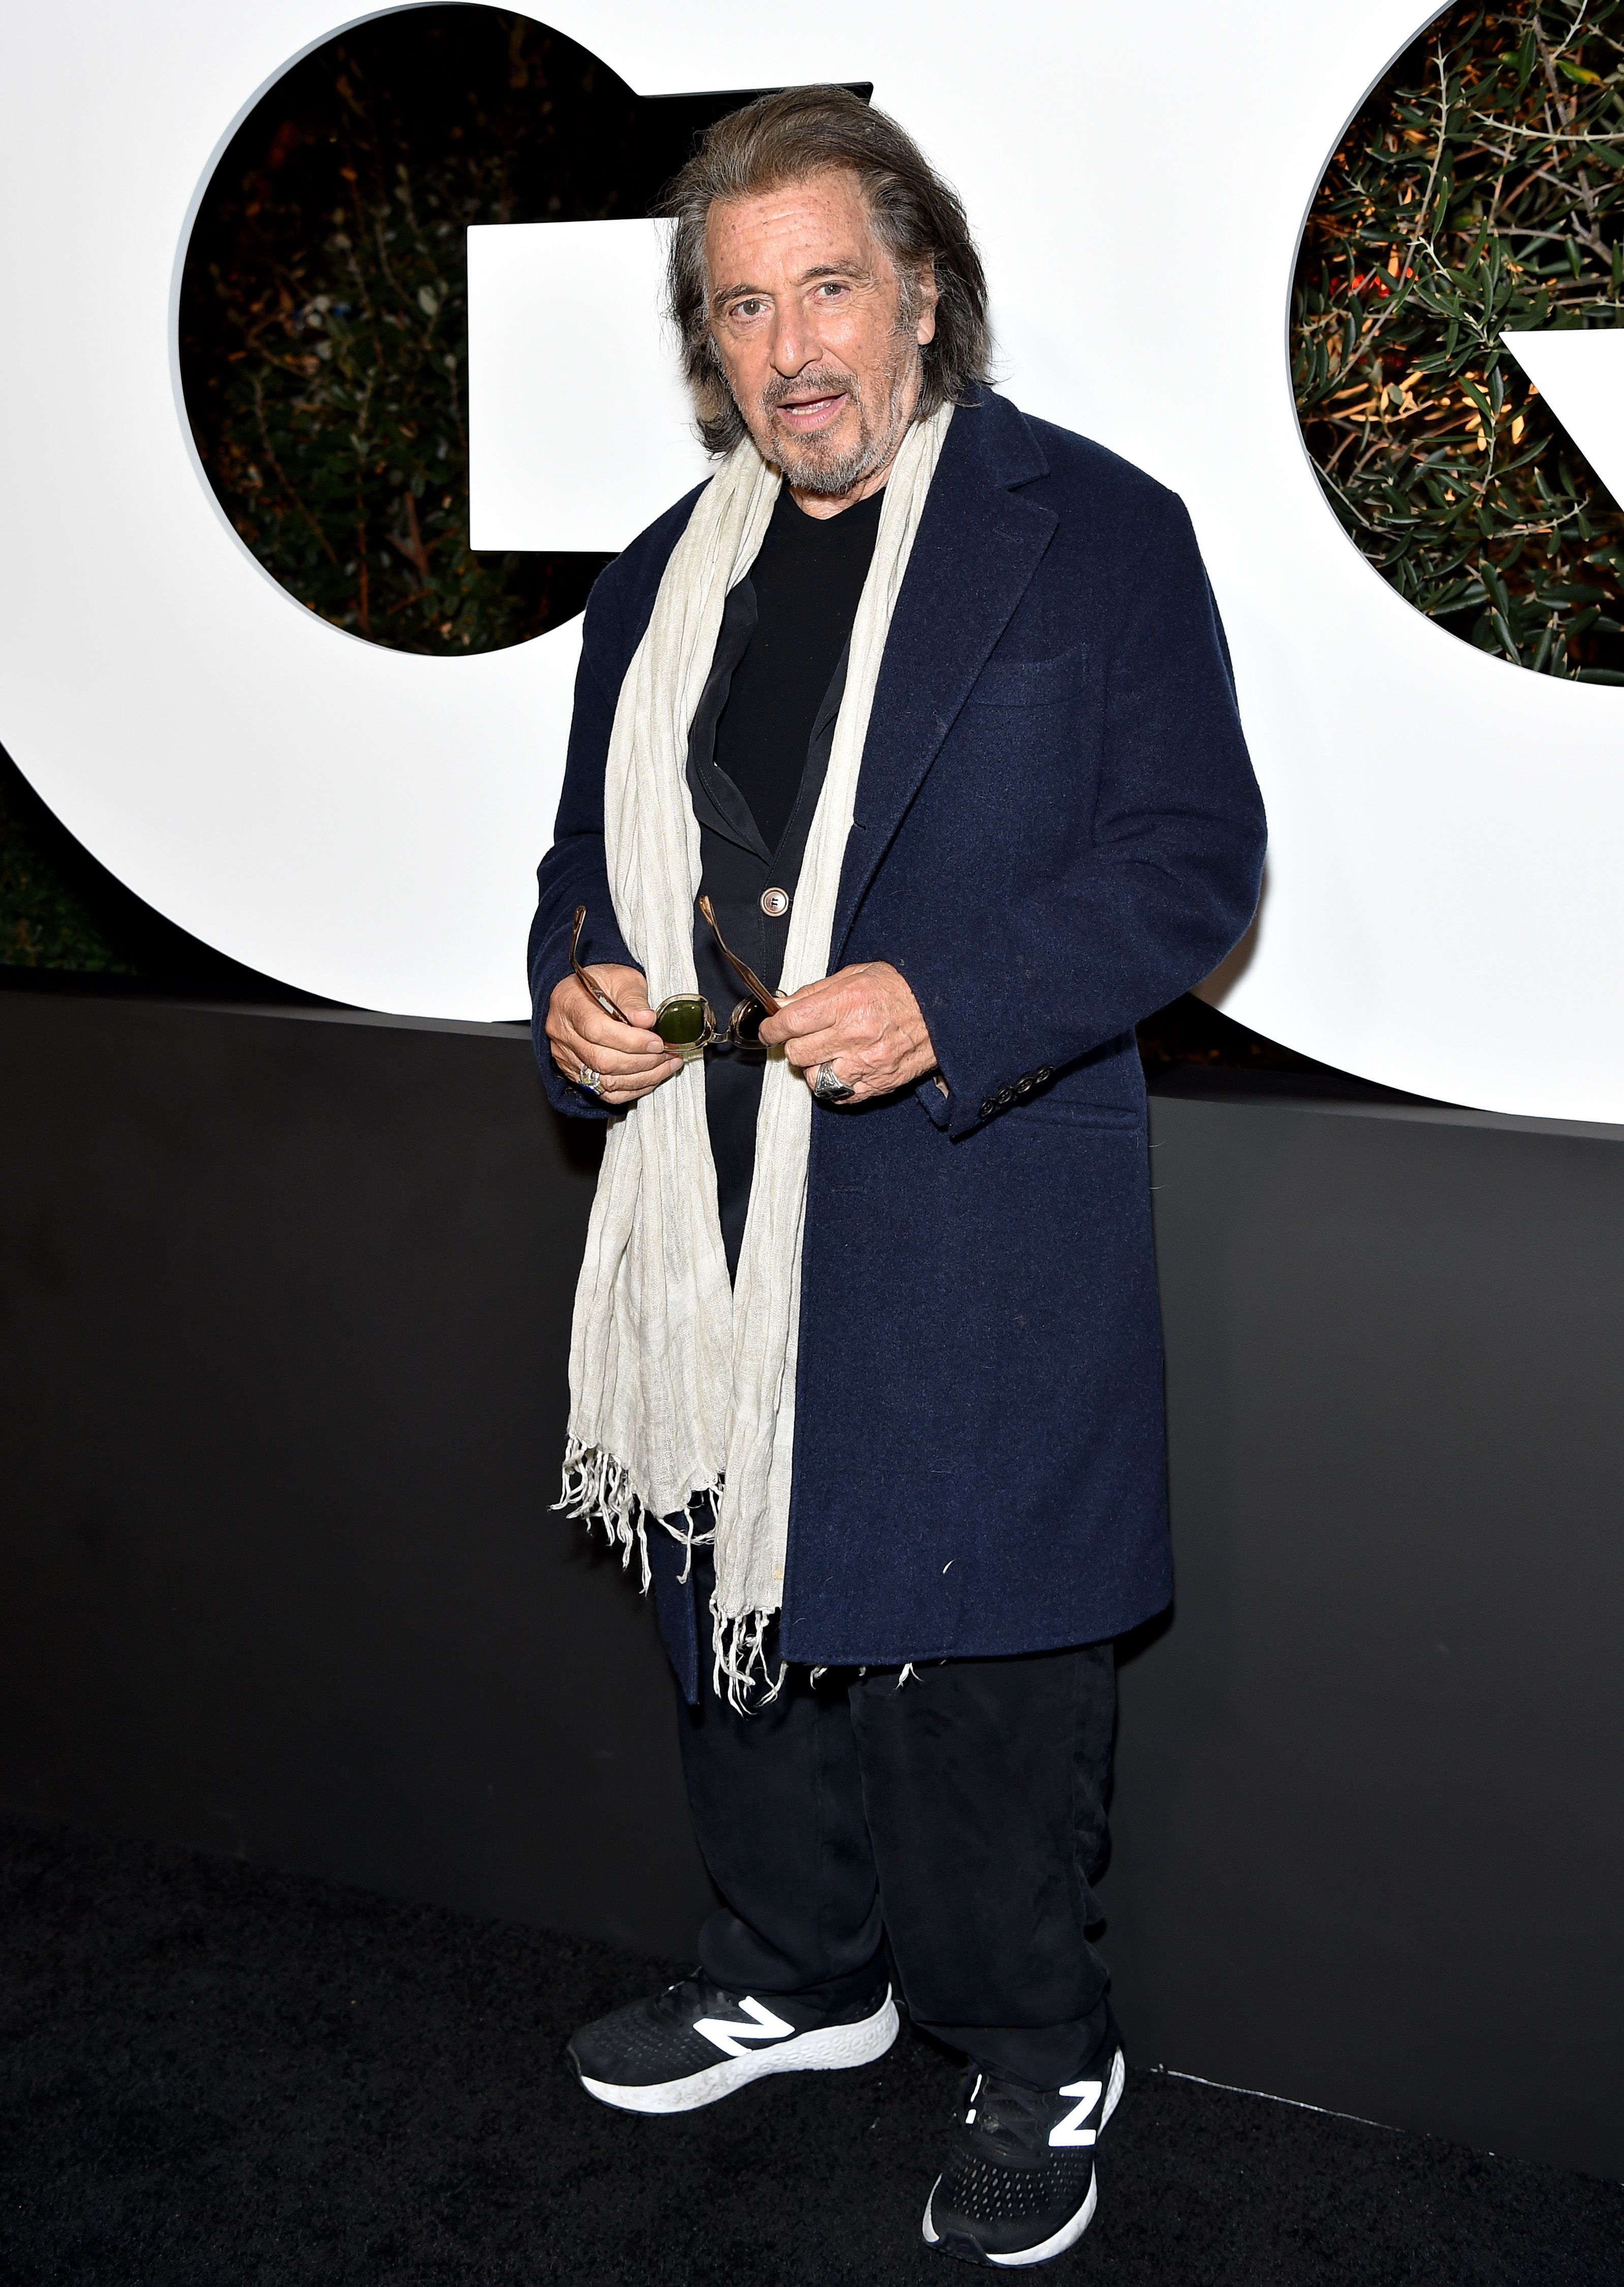 """Al Pacino at the """"GQ"""" Men of the Year on December 05, 2019, in West Hollywood, California Photo Axelle/Bauer-Griffin/FilmMagic/Getty Images"""